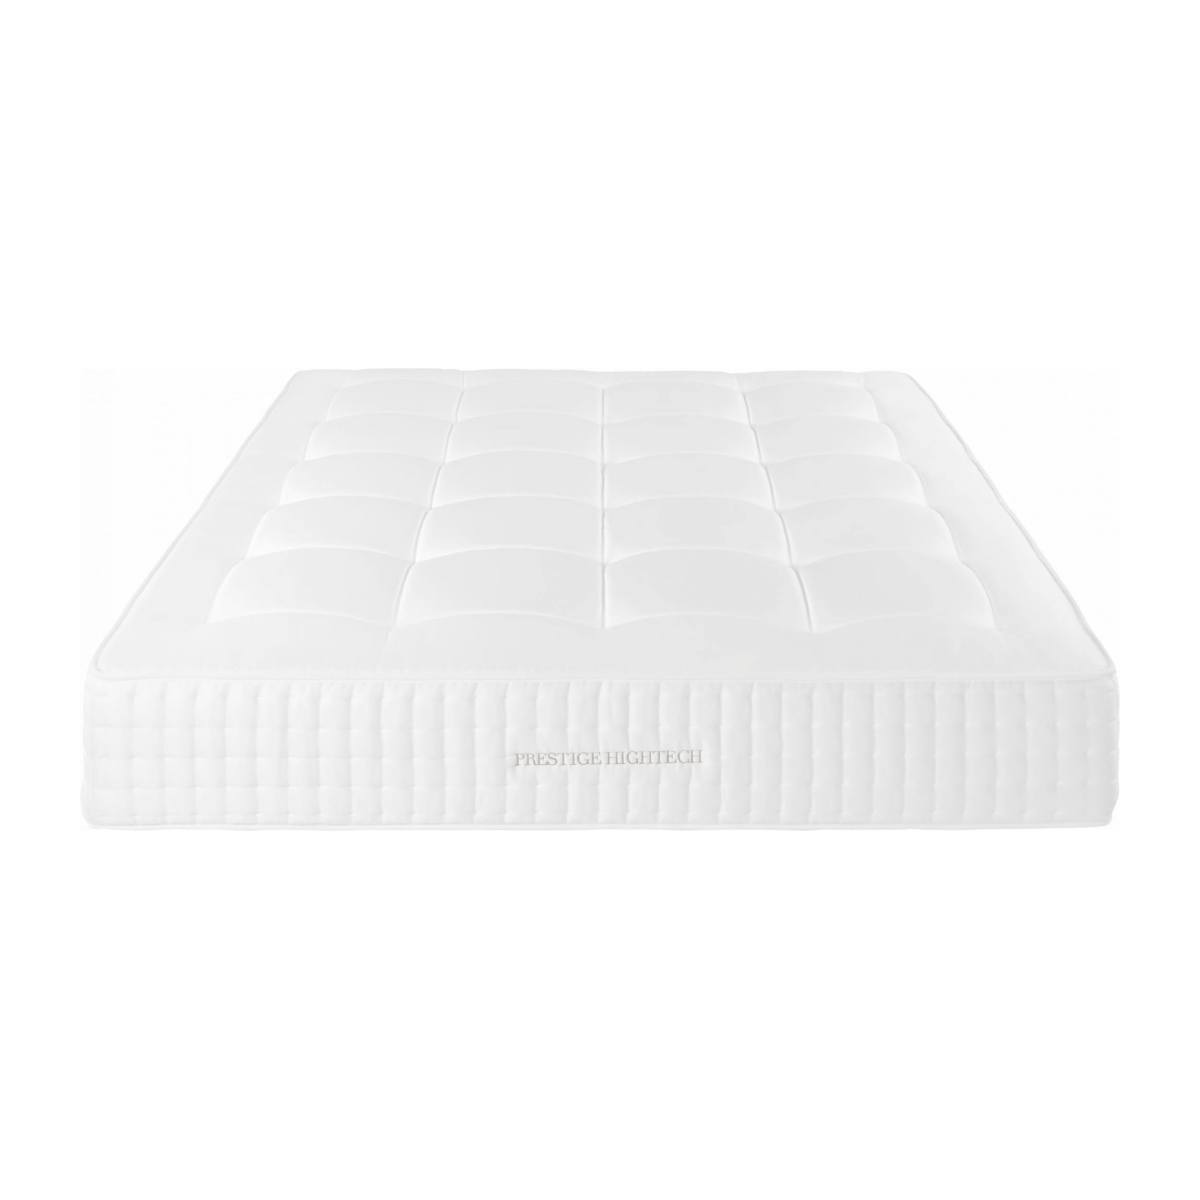 Spring mattress, width 26 cm - 180x200cm - medium support n°2